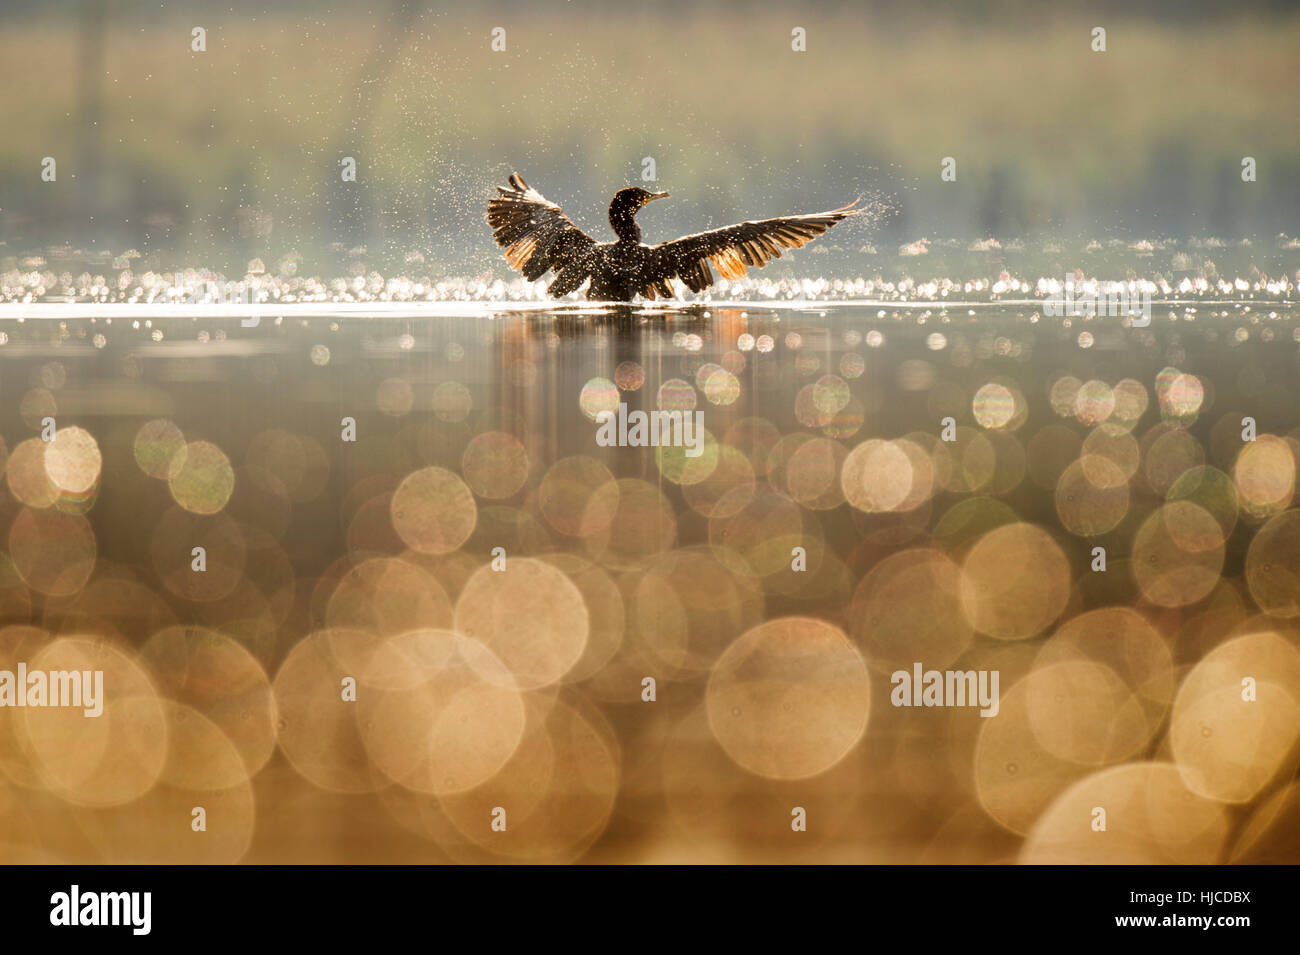 A Double-crested Cormorant flaps its wings dry as the early morning sun lights up the bird and small bubbles on - Stock Image